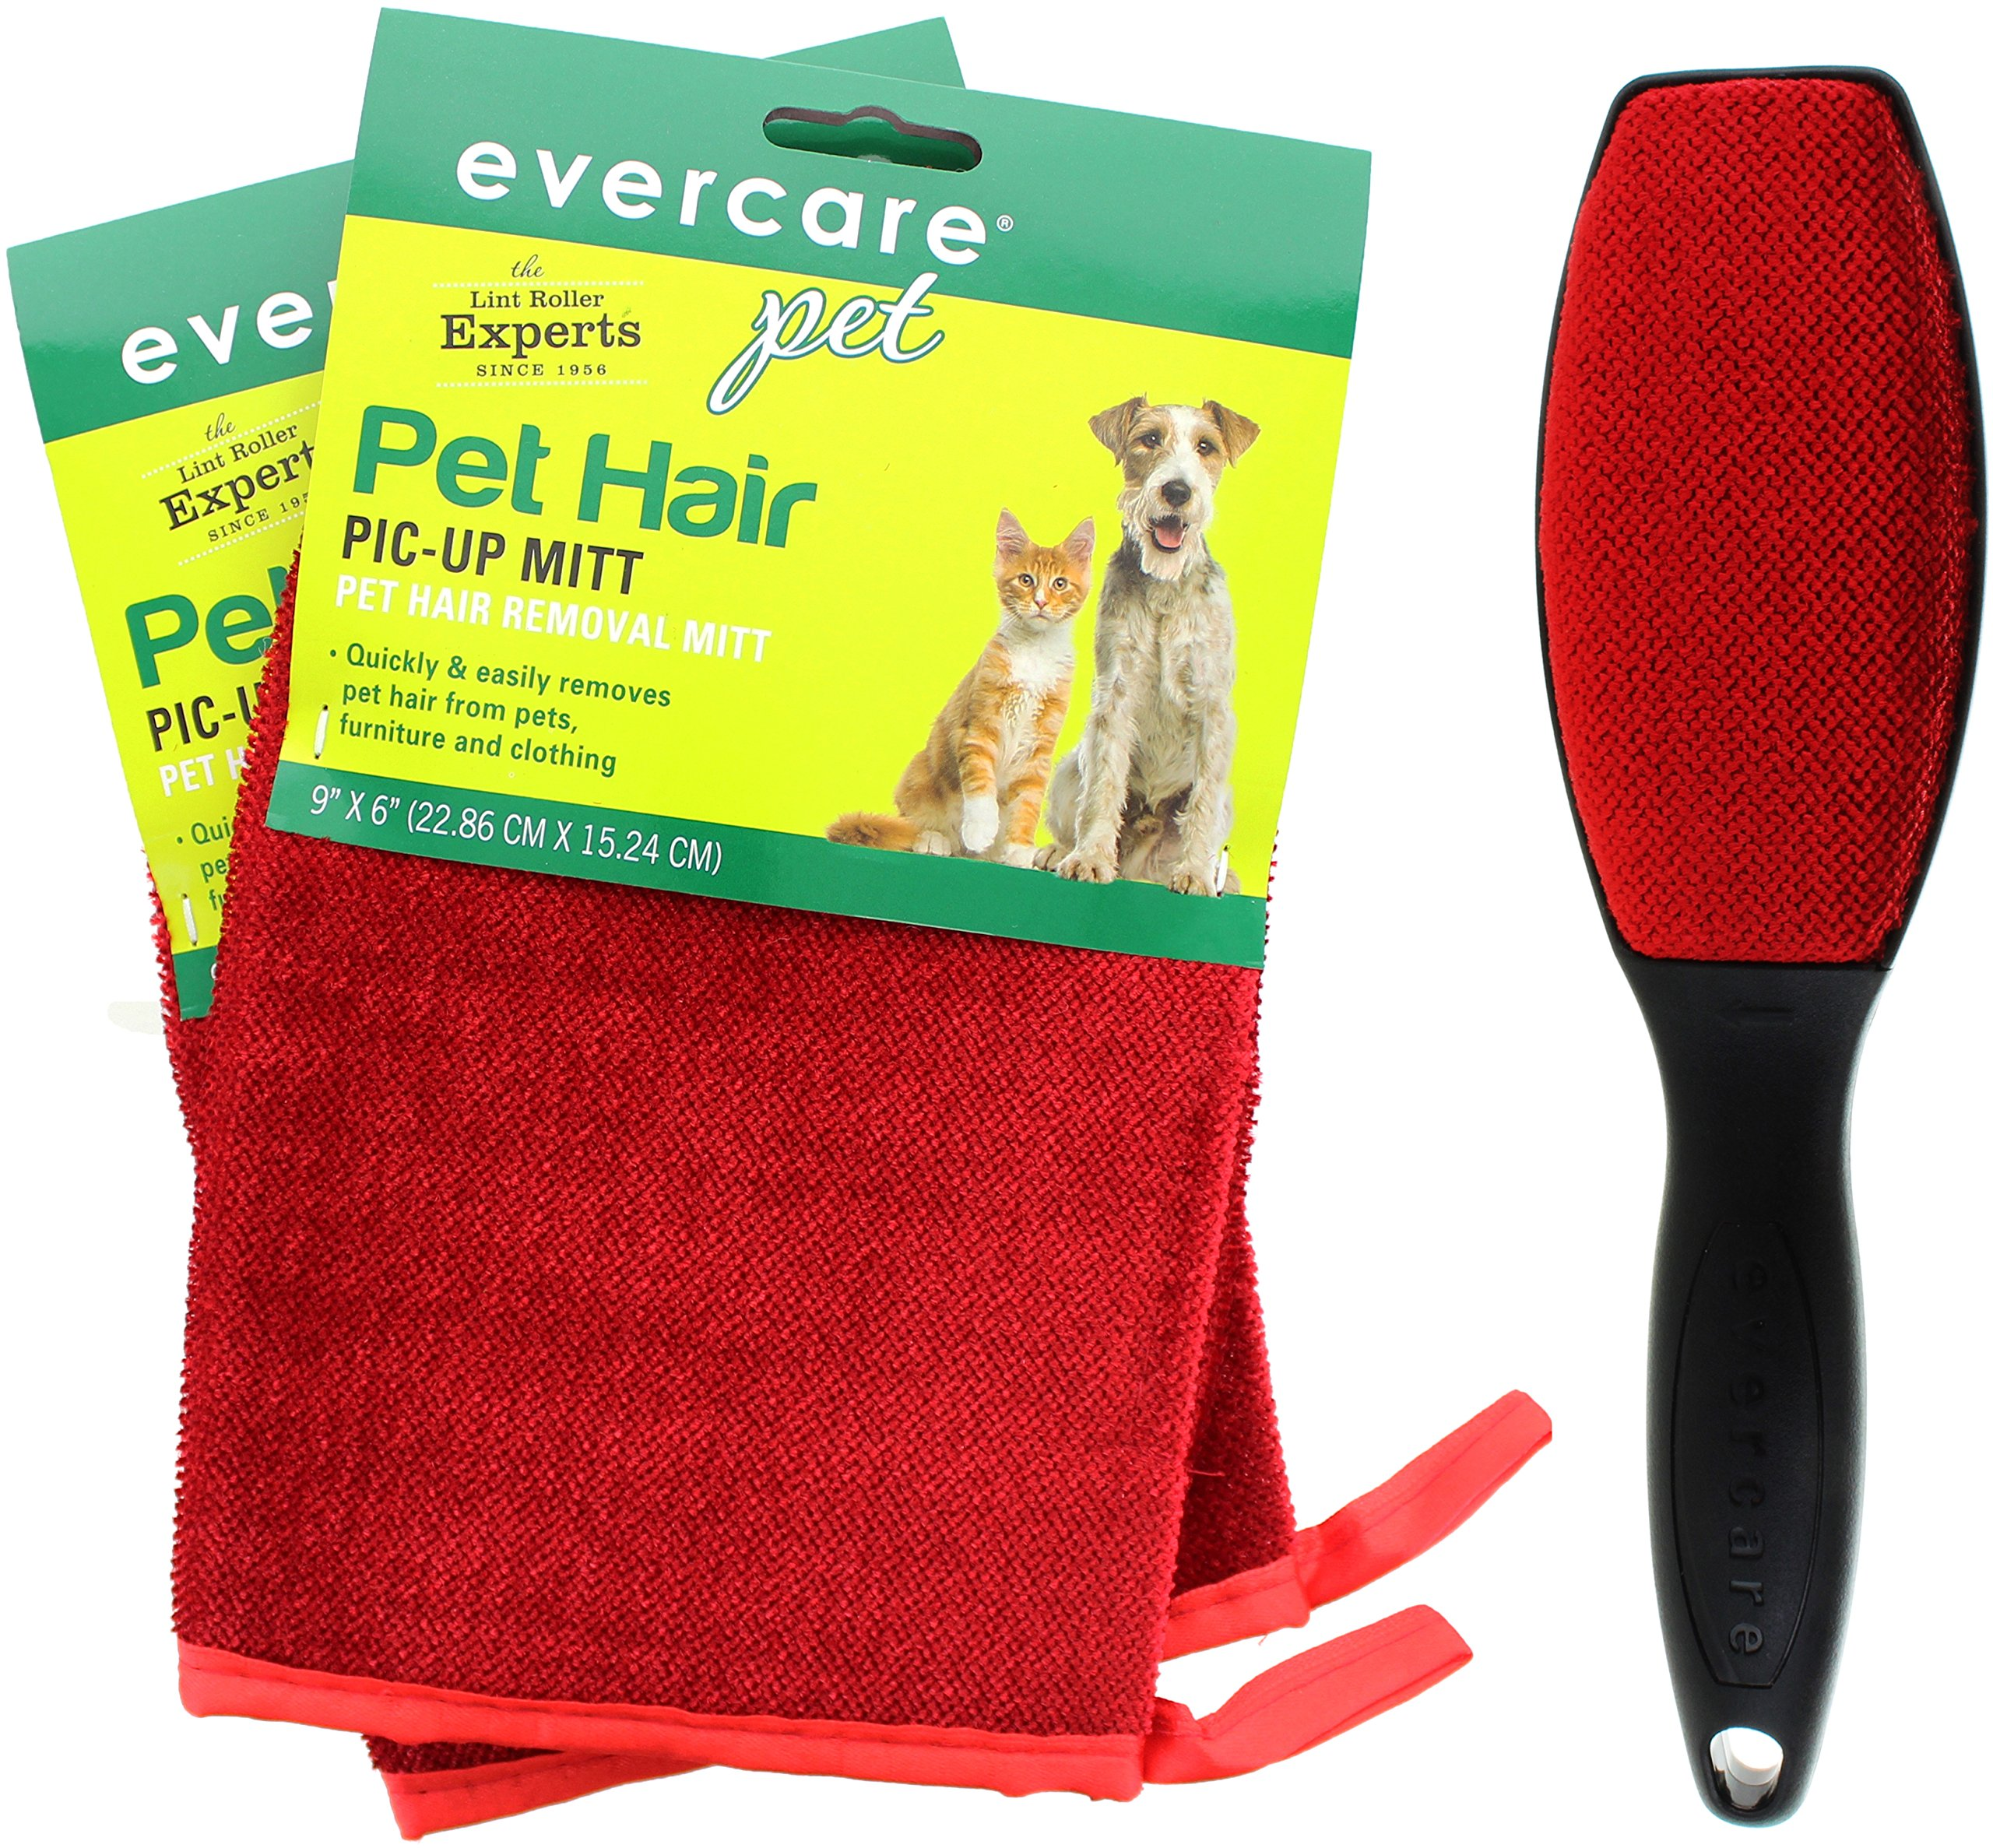 Evercare Pet Hair Remover Glove Pic-Up Mitt (2) and Magic Lint Brush (1) for Pets Clothes Furniture and Travel by Evercare (Image #1)